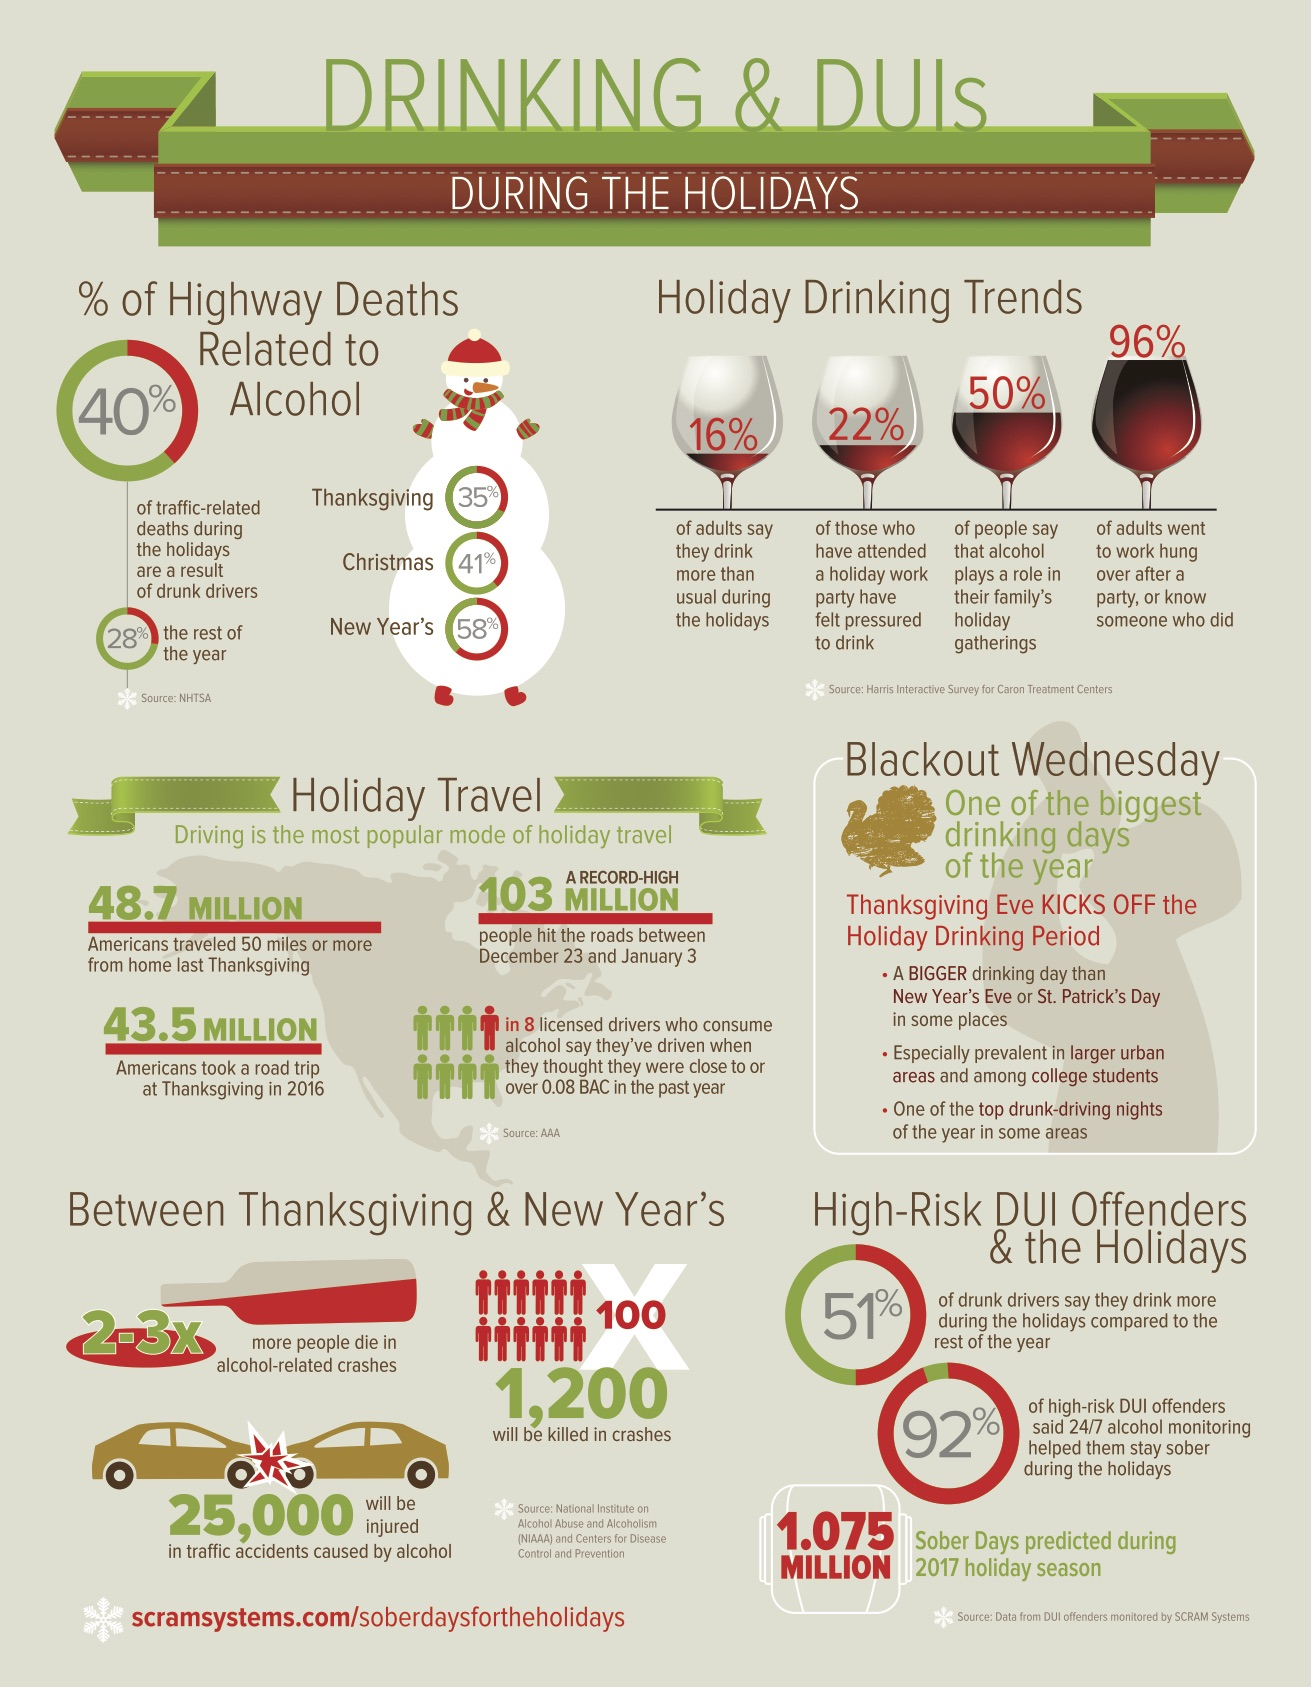 Holiday parties lead to drunk driving, accidents, injuries and death